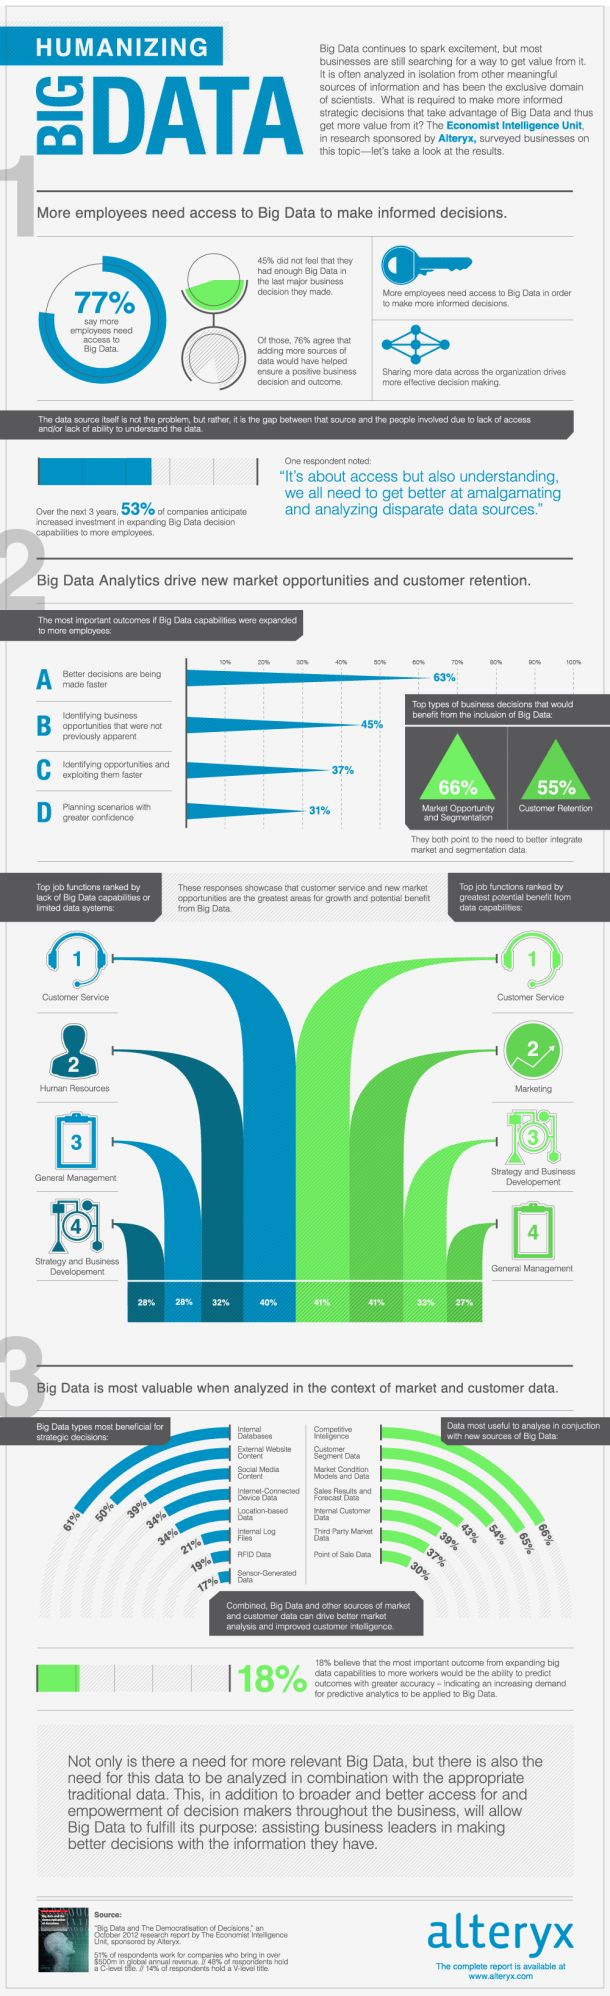 Humanizing Big Data [INFOGRAPHIC]